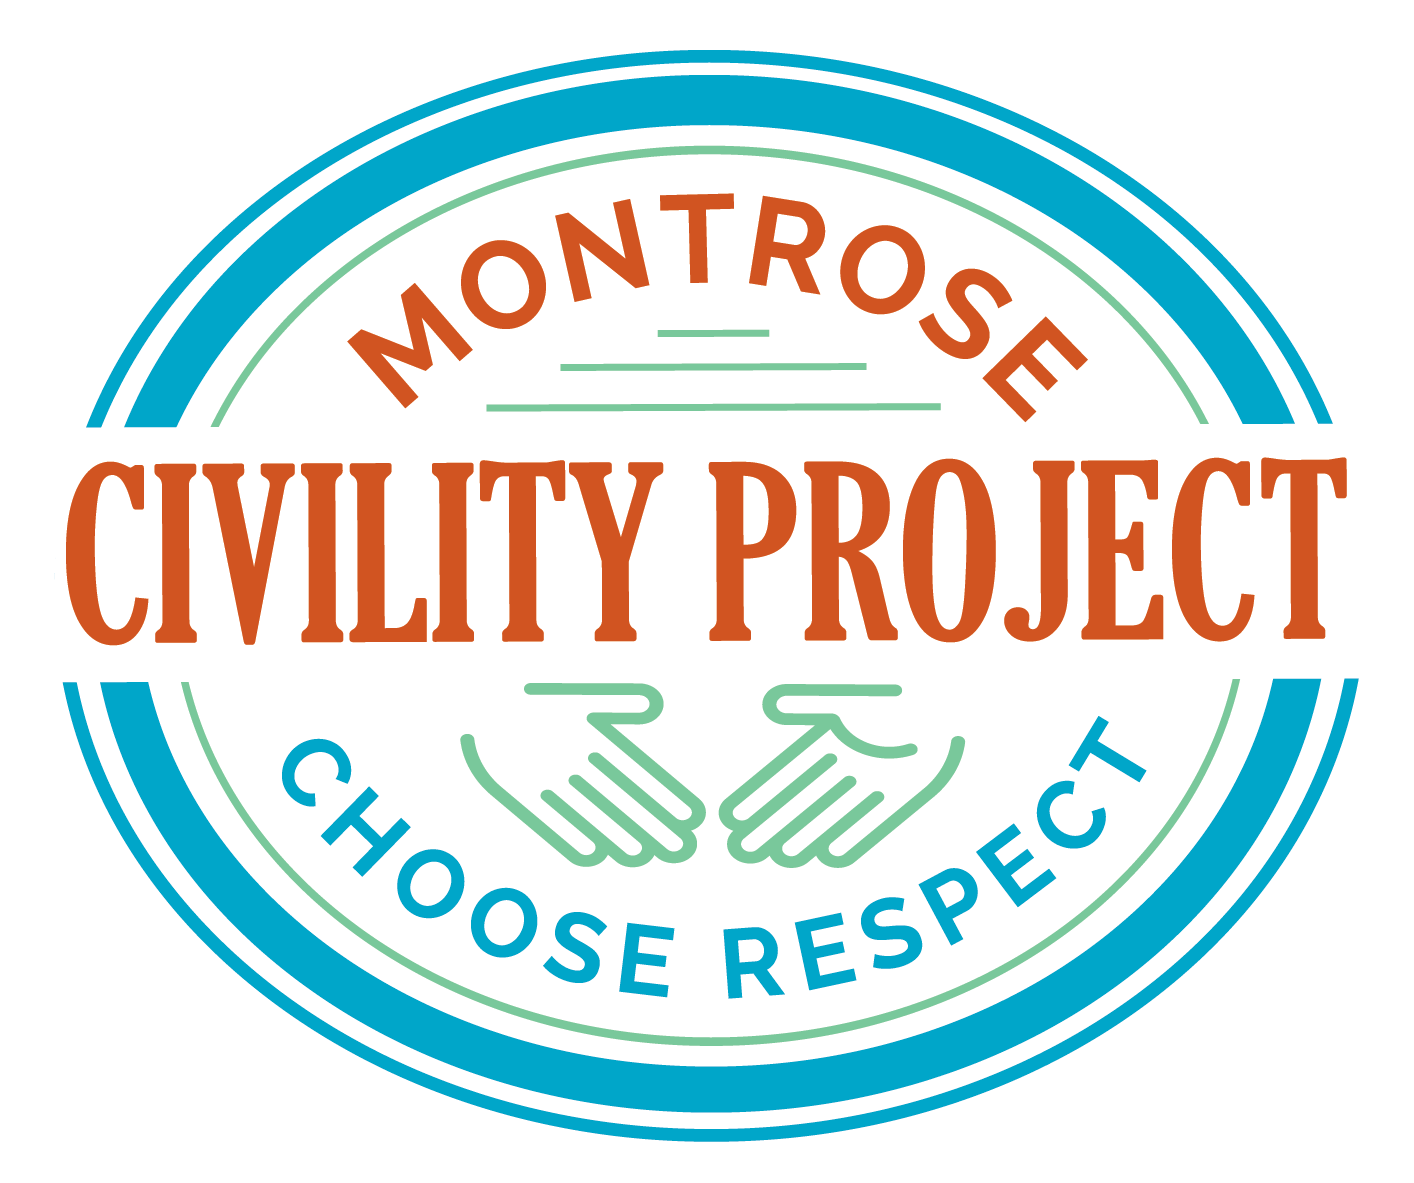 Montrose Civility Project